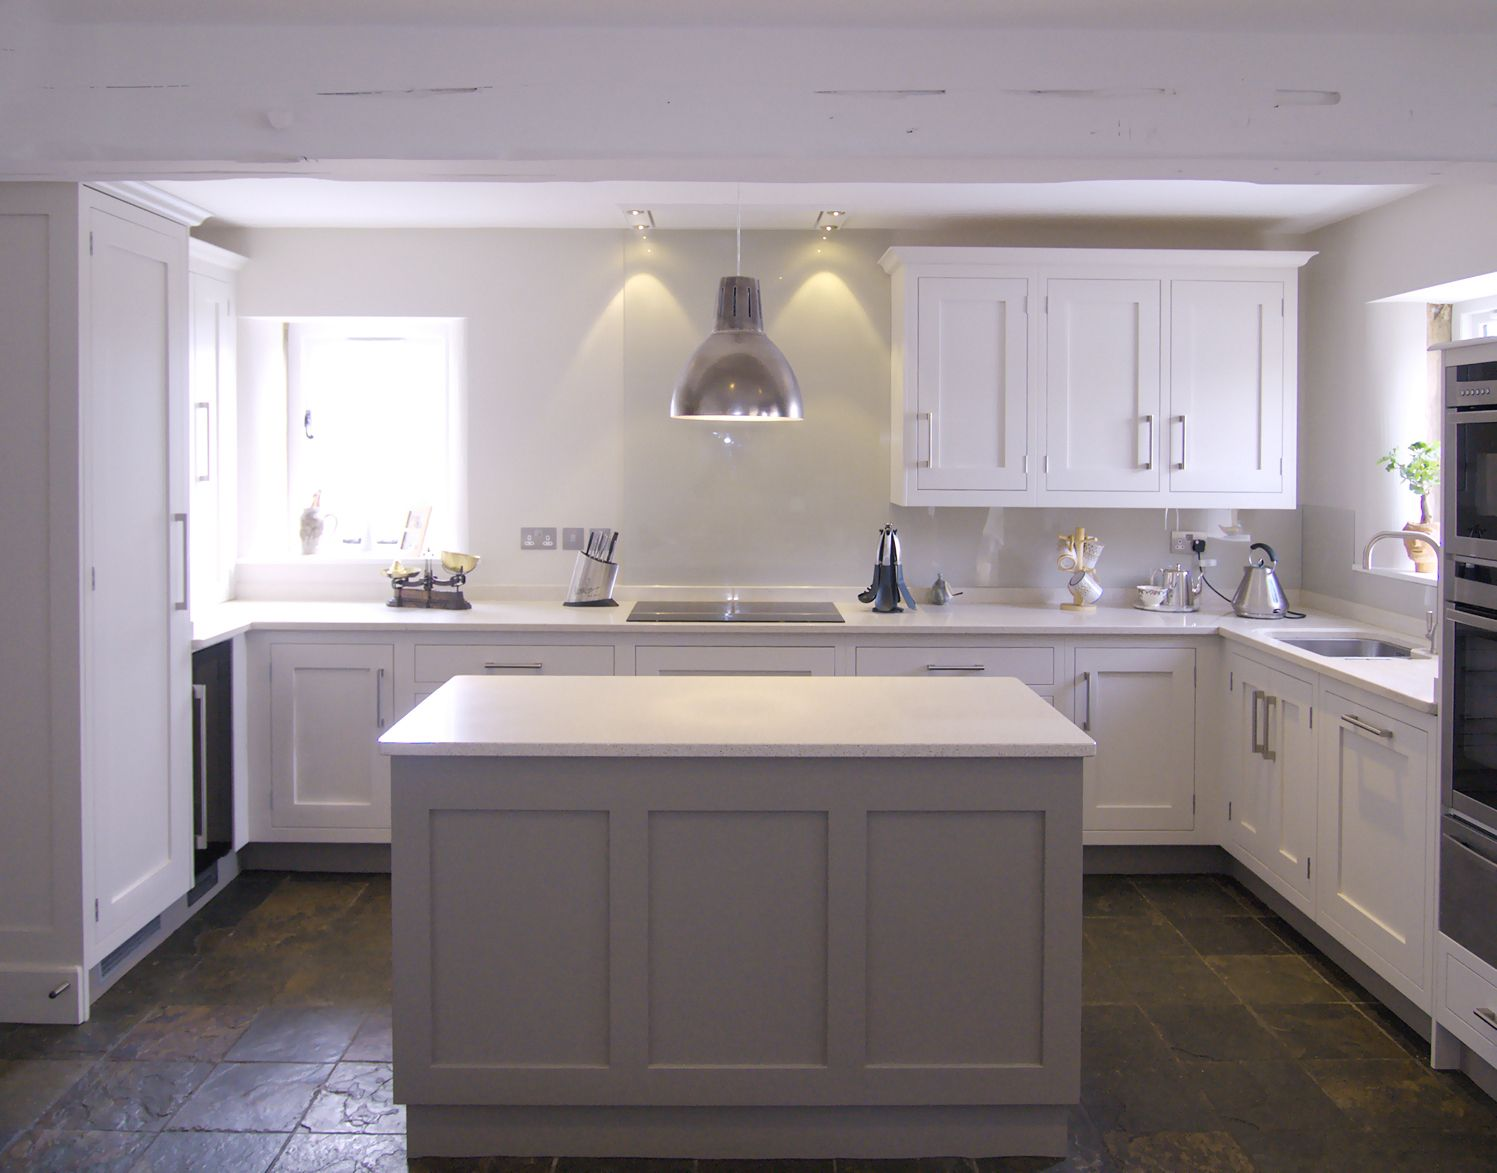 Farrow And Ball Skimming Stone Farrow And Ball Skimming Stone 241 Main Kitchen Farrow